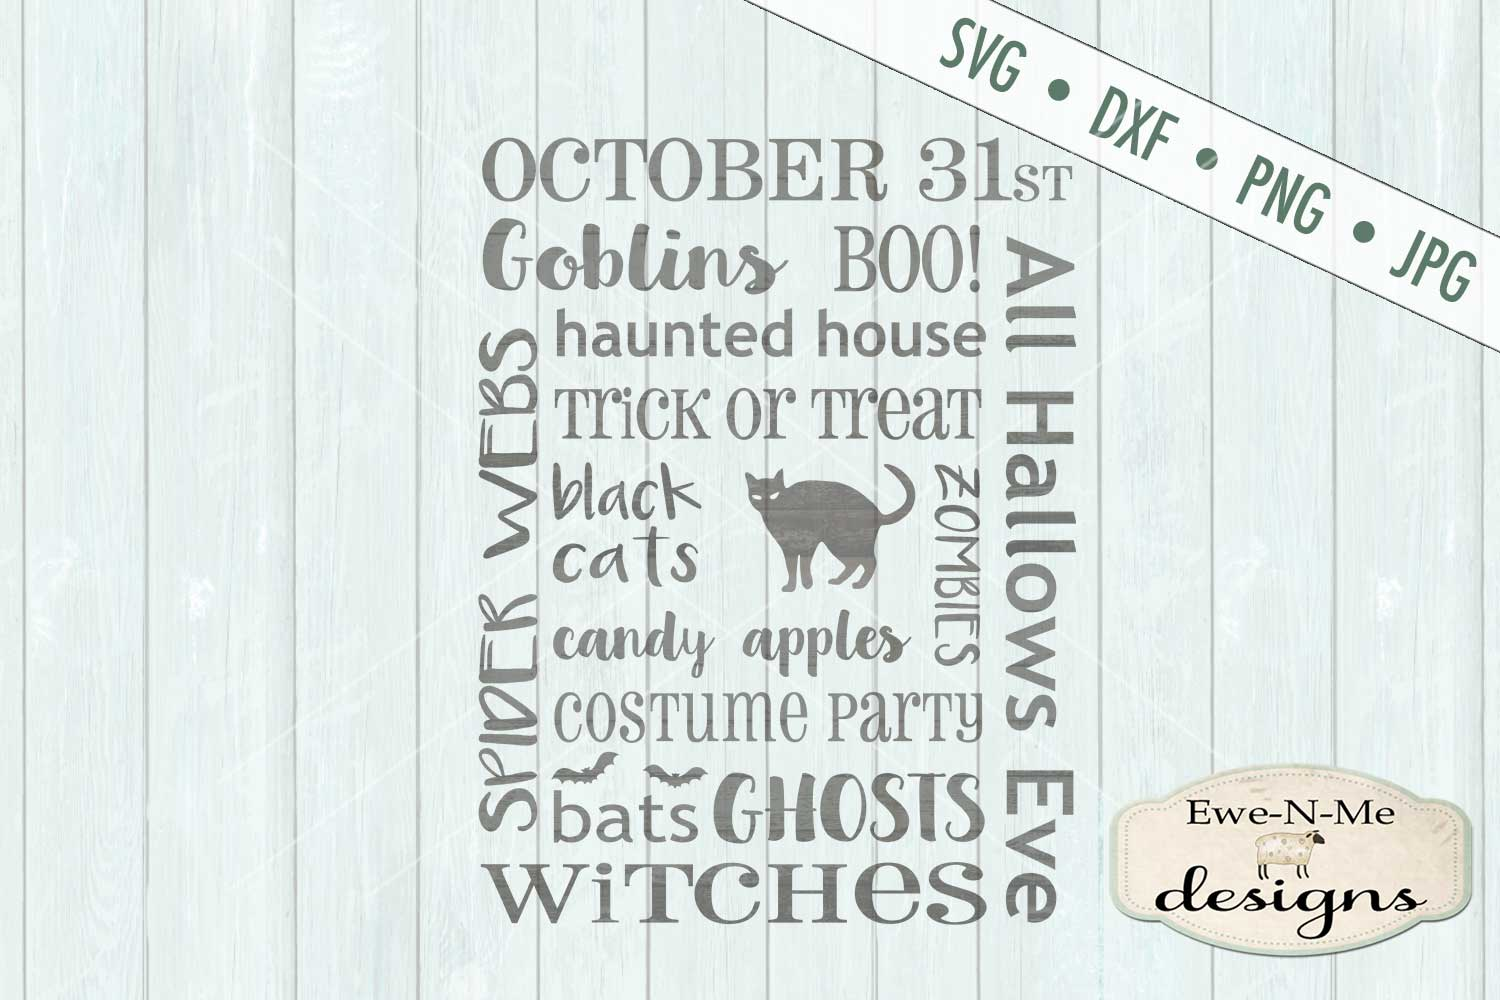 Halloween Subway Design Ghost Goblin Black Cat SVG DXF Files example image 2